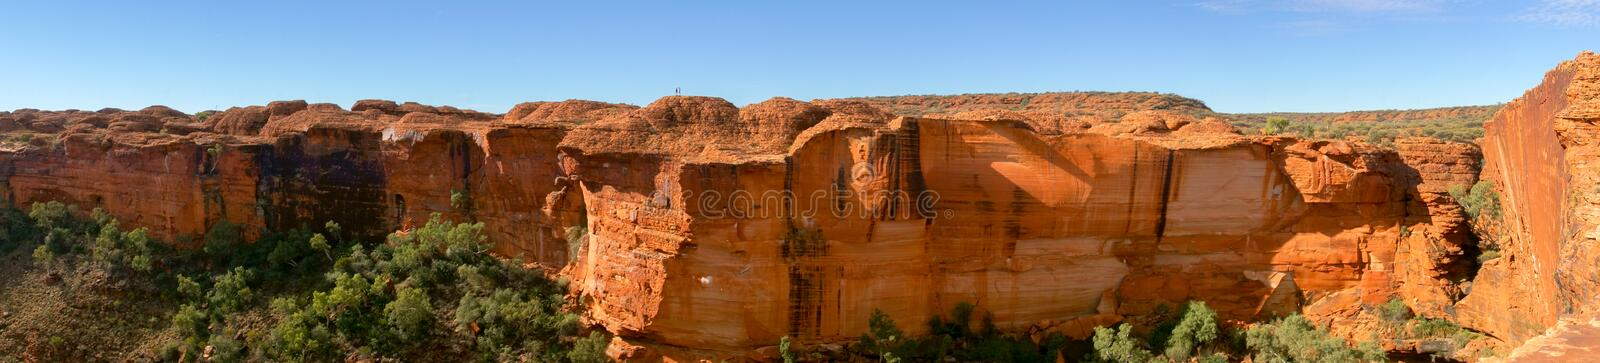 View of the Kings Canyon, Watarrka National Park, Northern Territory, Australia. View into the Kings Canyon, Watarrka National Park, Northern Territory australia royalty free stock photo